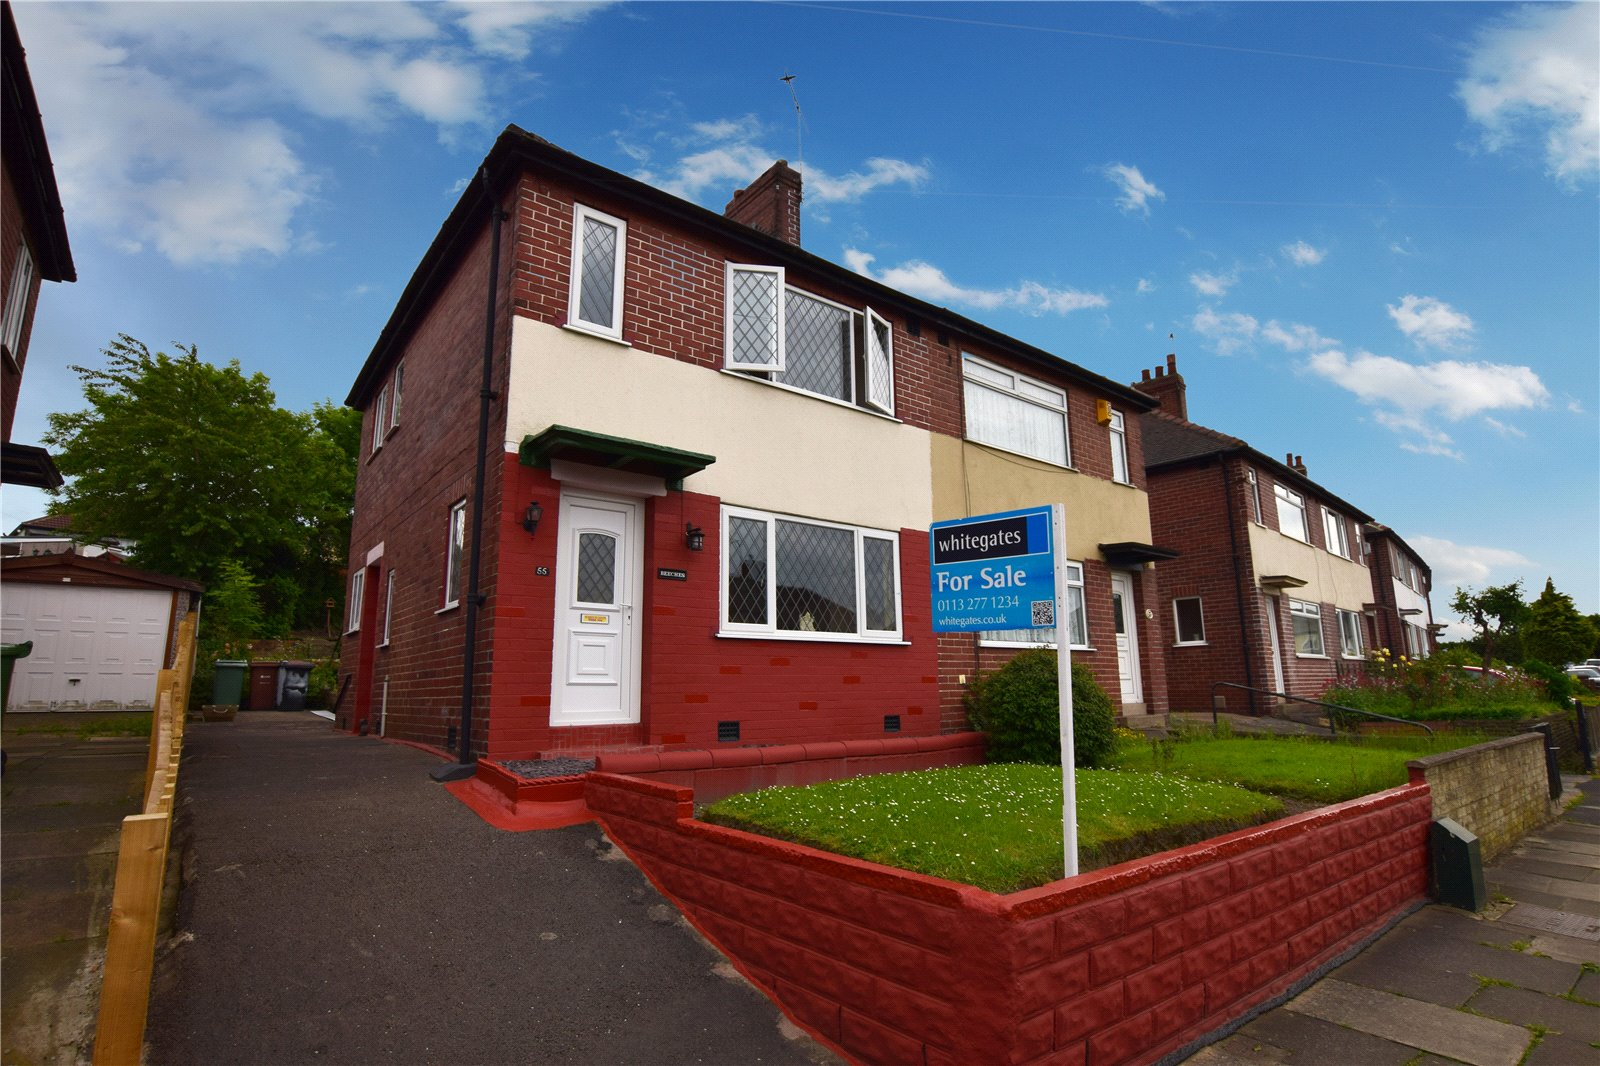 Whitegates South Leeds 3 Bedroom House For Sale In